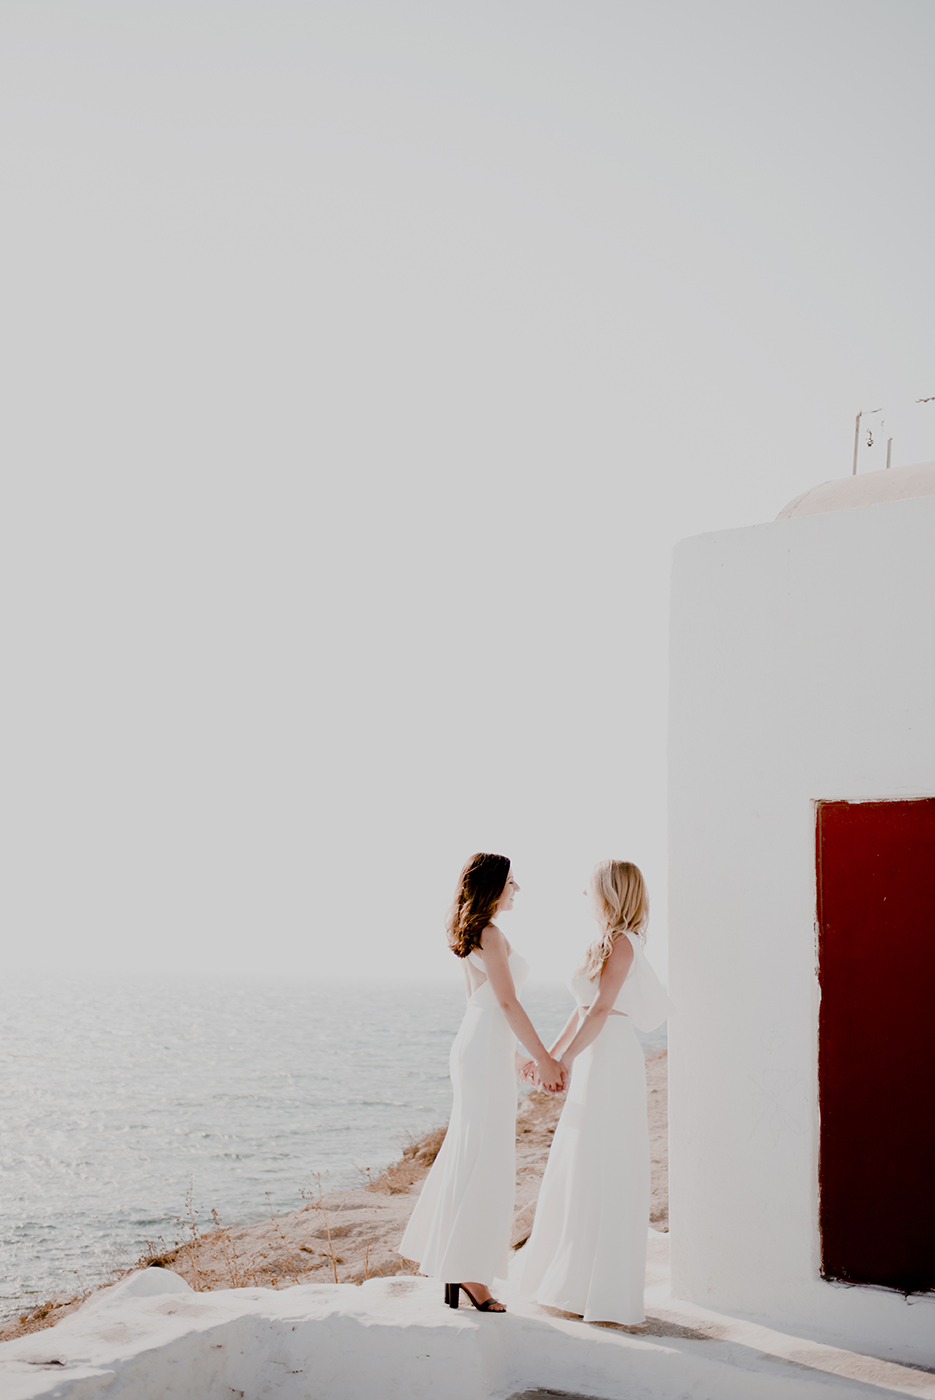 Kirill-Samarits-Wedding-Photography-Greece-AThens-Mykonos-Santorini-Same-Sex-Wedding-Photographer-Candice-Mykonos (23)